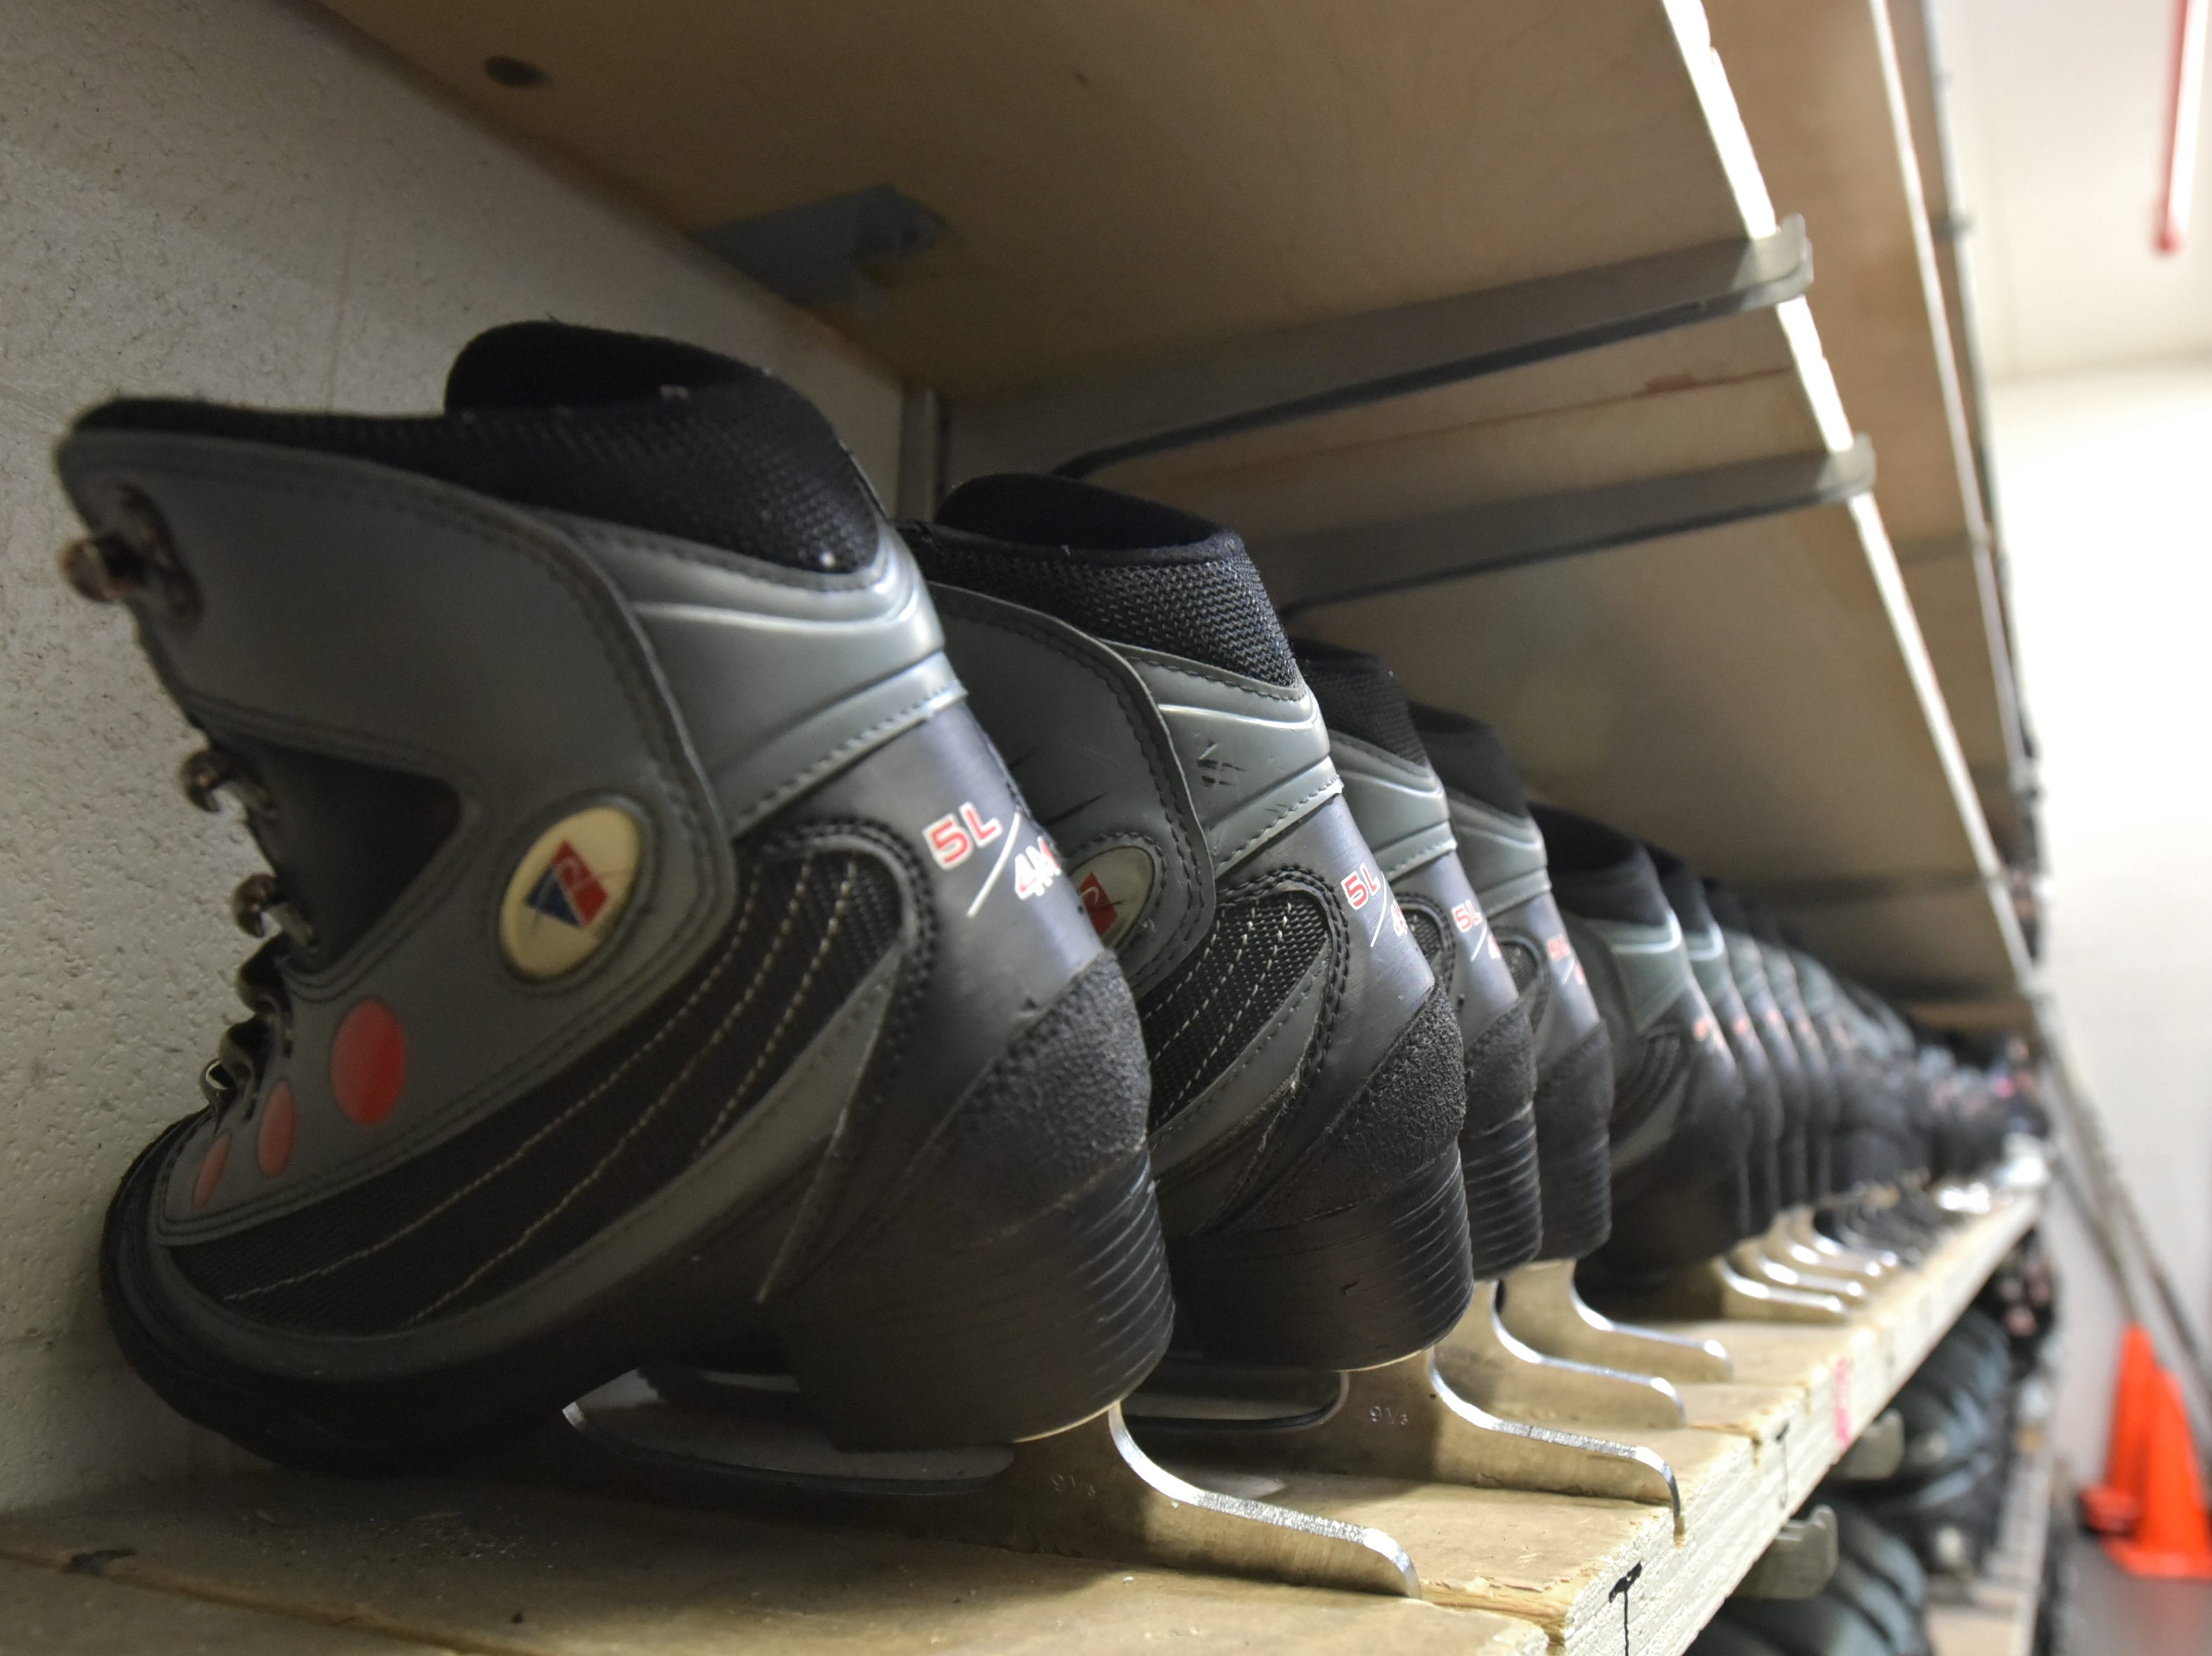 Many pairs of rental ice skates await users at the Novi Ice Arena on Jan. 23. Skates can be rented for $3 a visit.